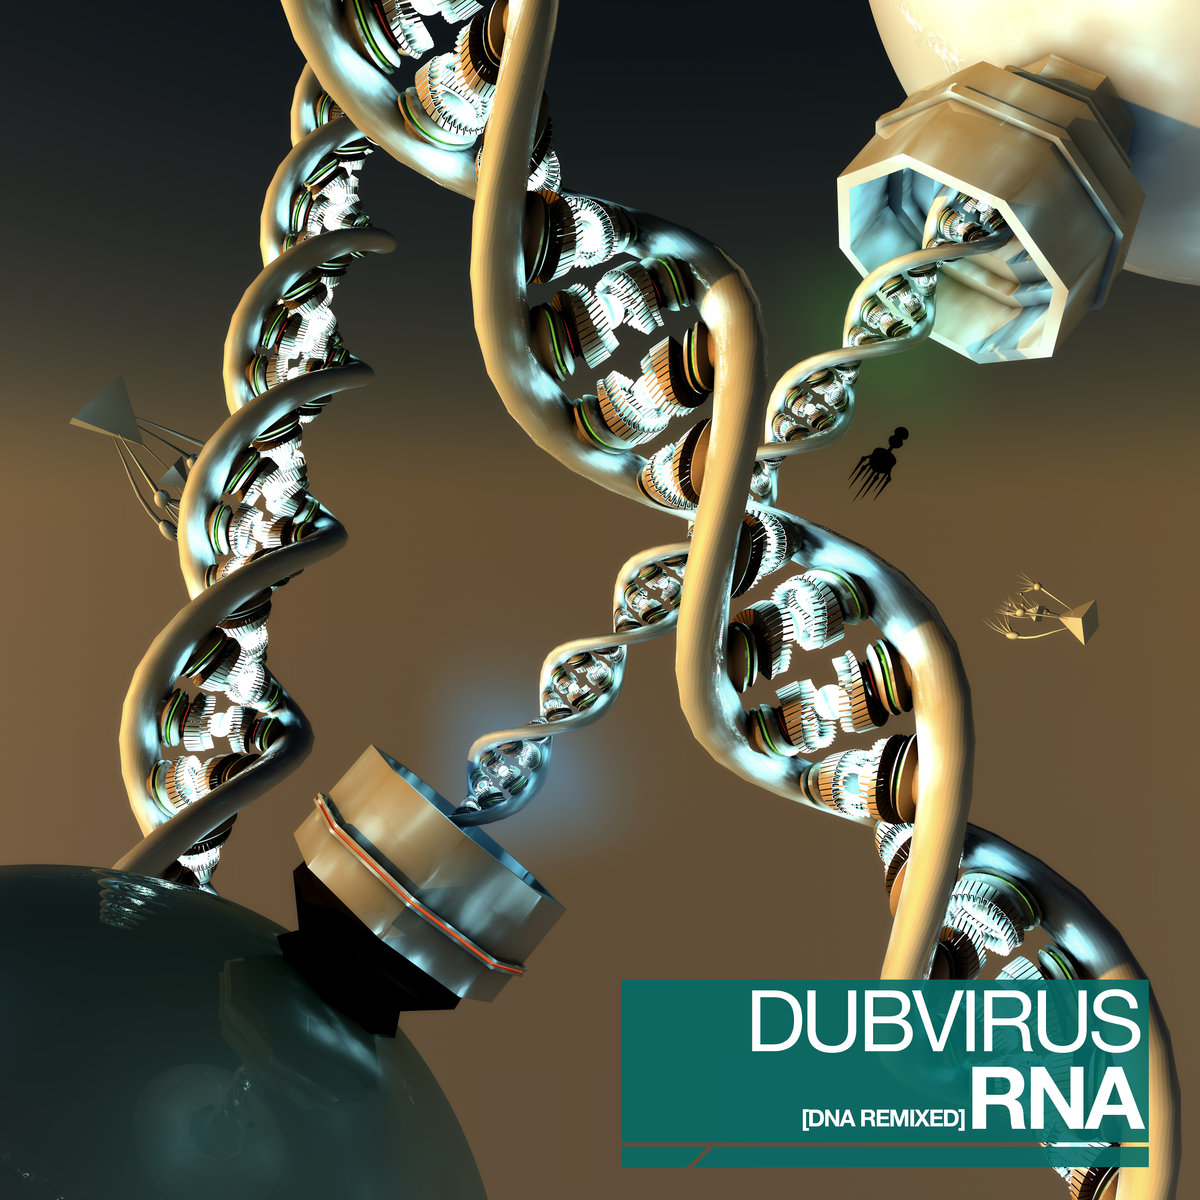 Dubvirus - Breathe (Rook Remix) @ 'RNA (DNA Remixed)' album (bass, dubvirus)